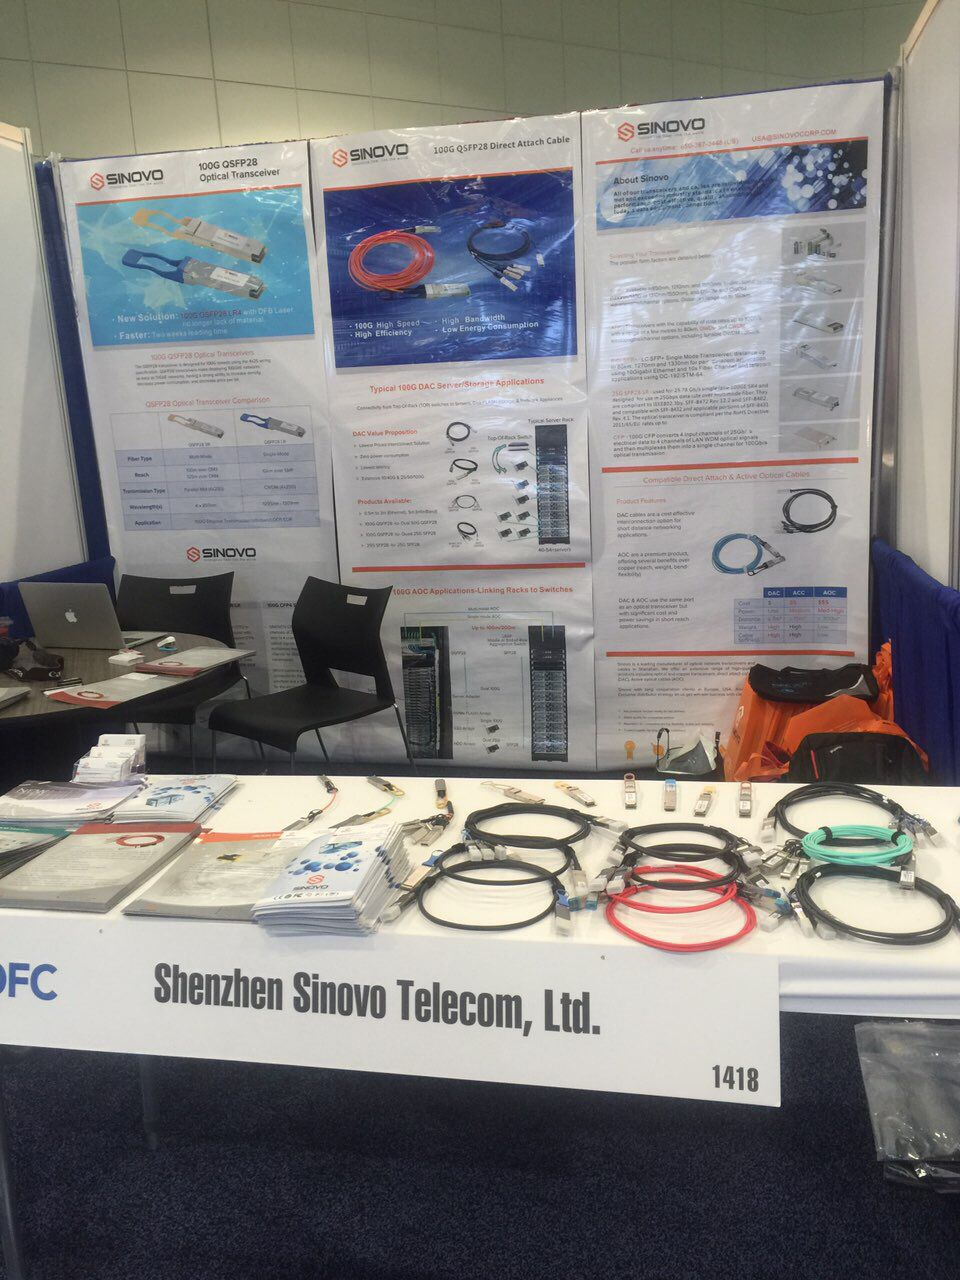 Sinovo Show 100G QSFP28 LR and Cable 2017 OFC